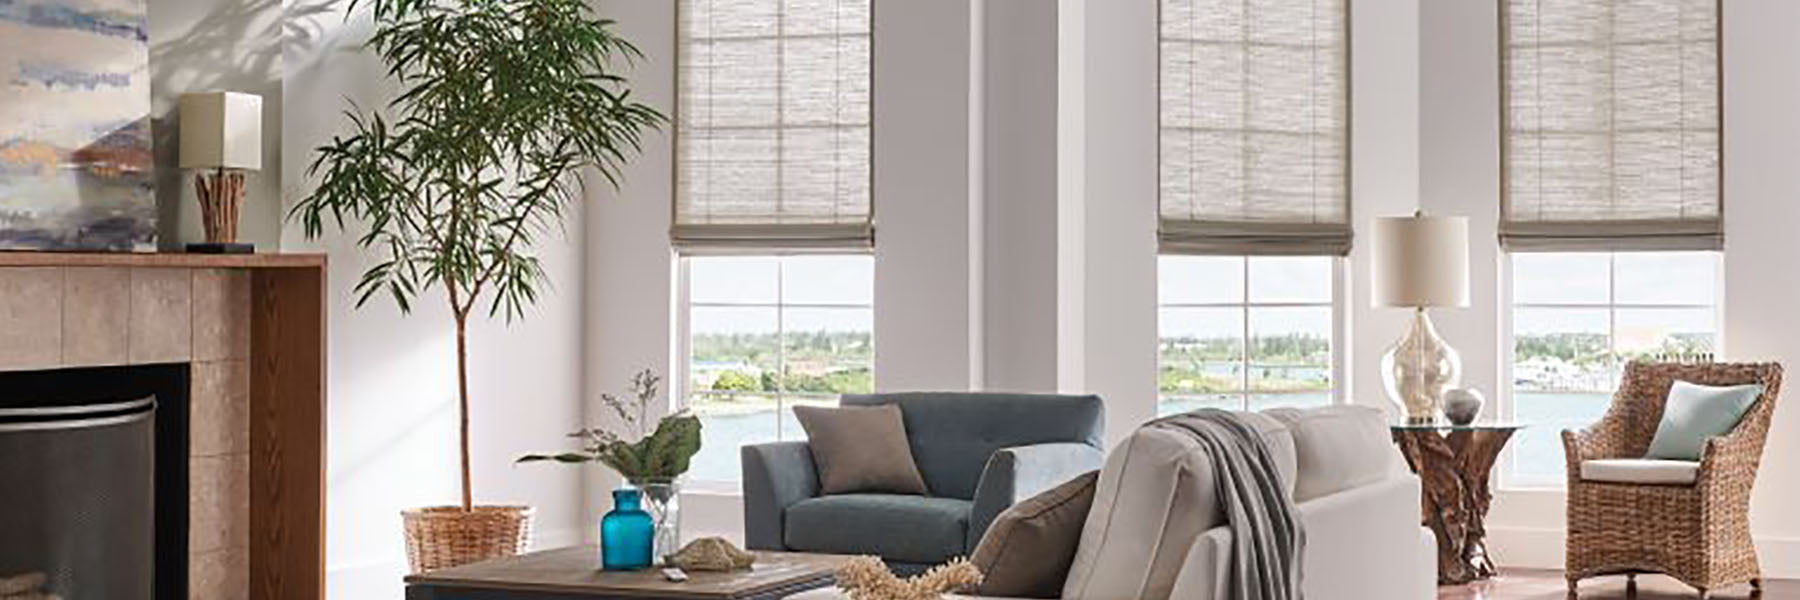 Shop Graber Custom Shades at John Boyle Decorating Centers.